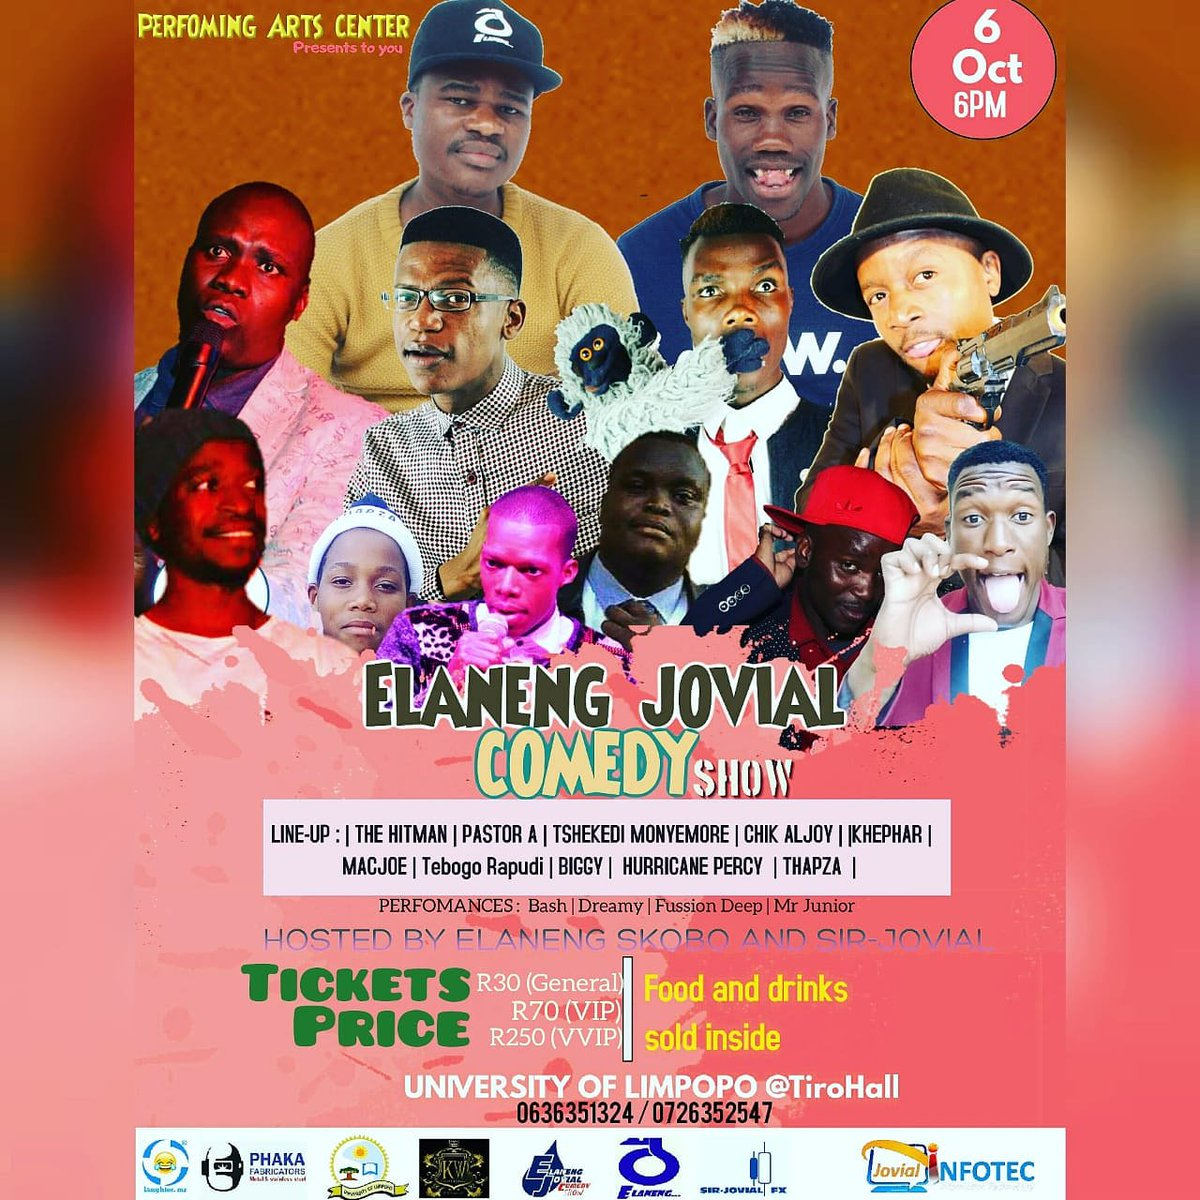 Let&#39;s meet at University of Limpopo Tiro hall on the 6th October  @sir_jovial_fx  #GainWithTrevor #TrapaDrive #ThingsAreMovingSlowly #DanielDrive #MzanziFolloTrain #TheQueenMzanzi #PresenterSearchOn3 #Uzalo #AskAMan #LadiesWithBooty #ImbizaKaZulu #SouthAfrica #SkeemSaam #IdolsSA <br>http://pic.twitter.com/1tCNgQSCU8